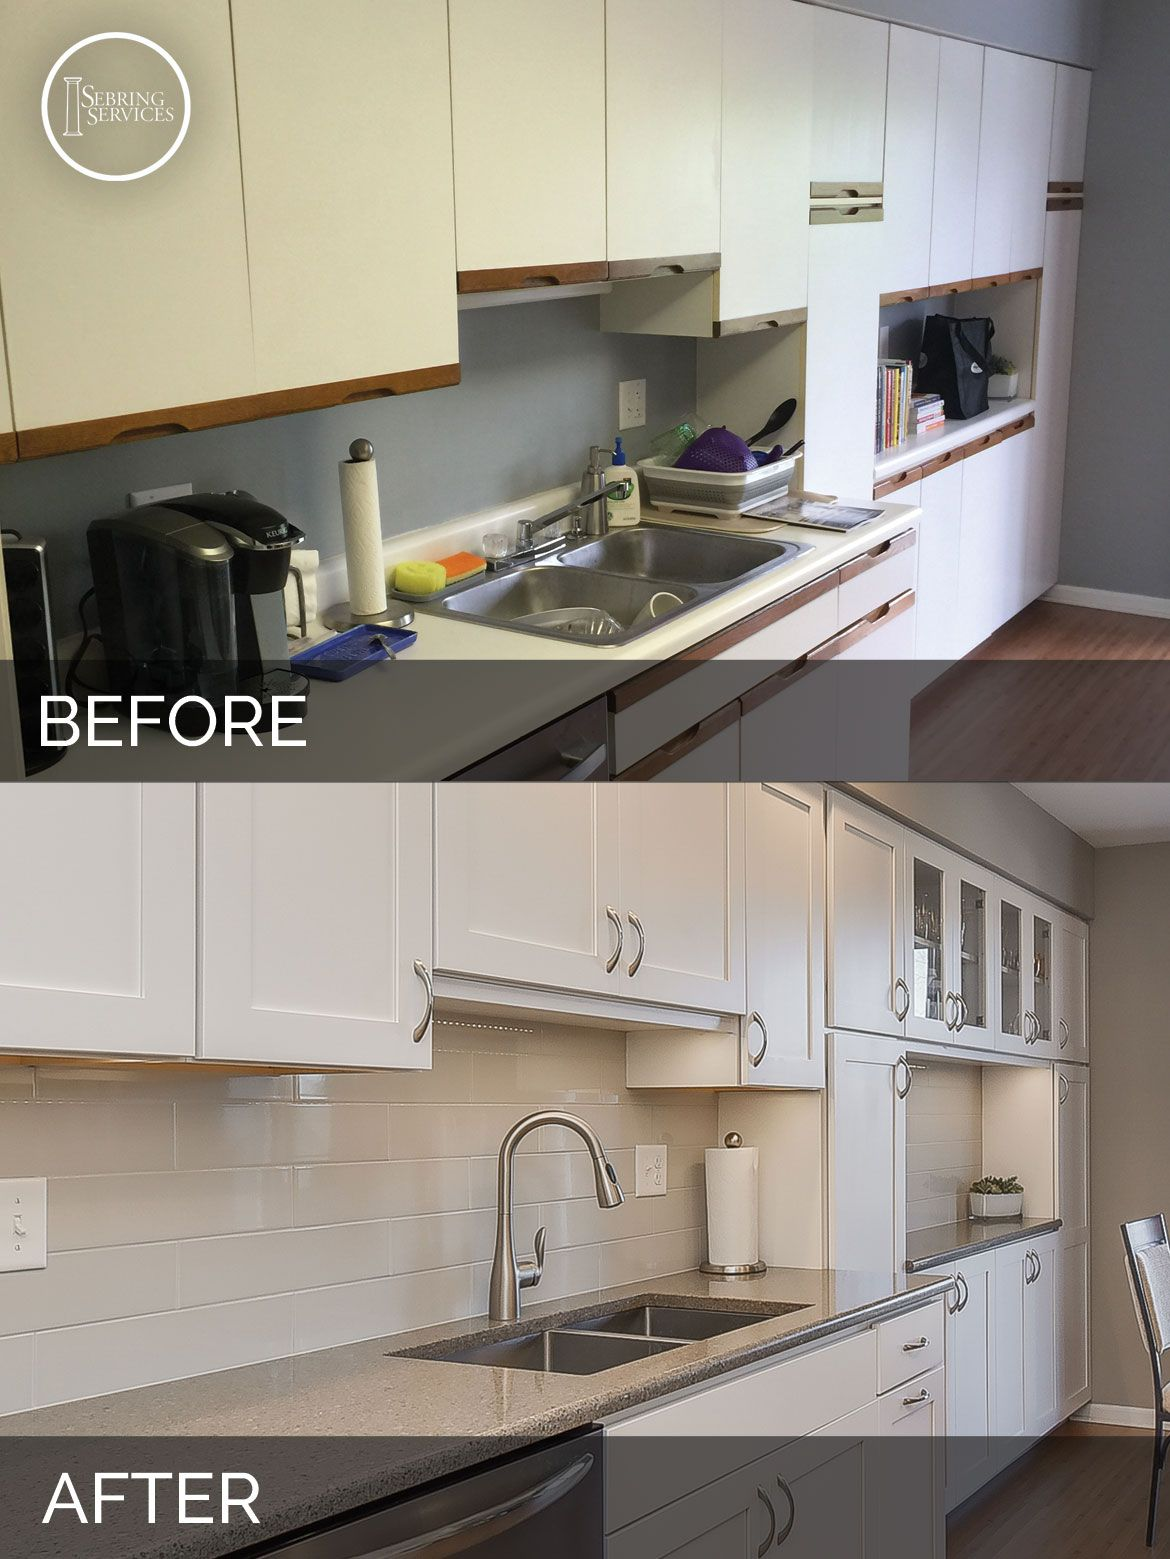 barb s kitchen before after pictures before after kitchen rh pinterest com